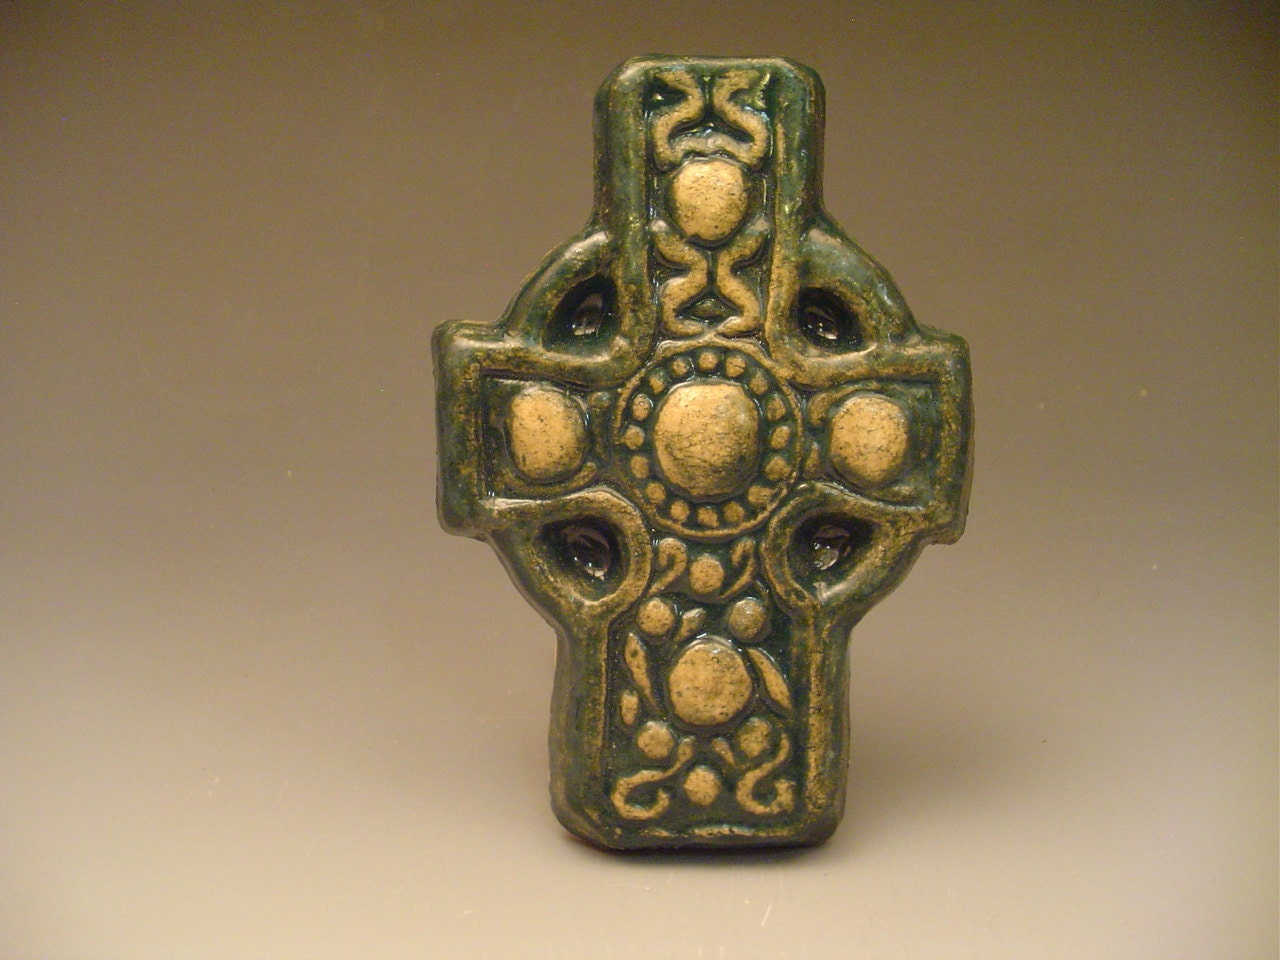 Celtic cross gaelic irish green christian home decor wall for Irish home decorations